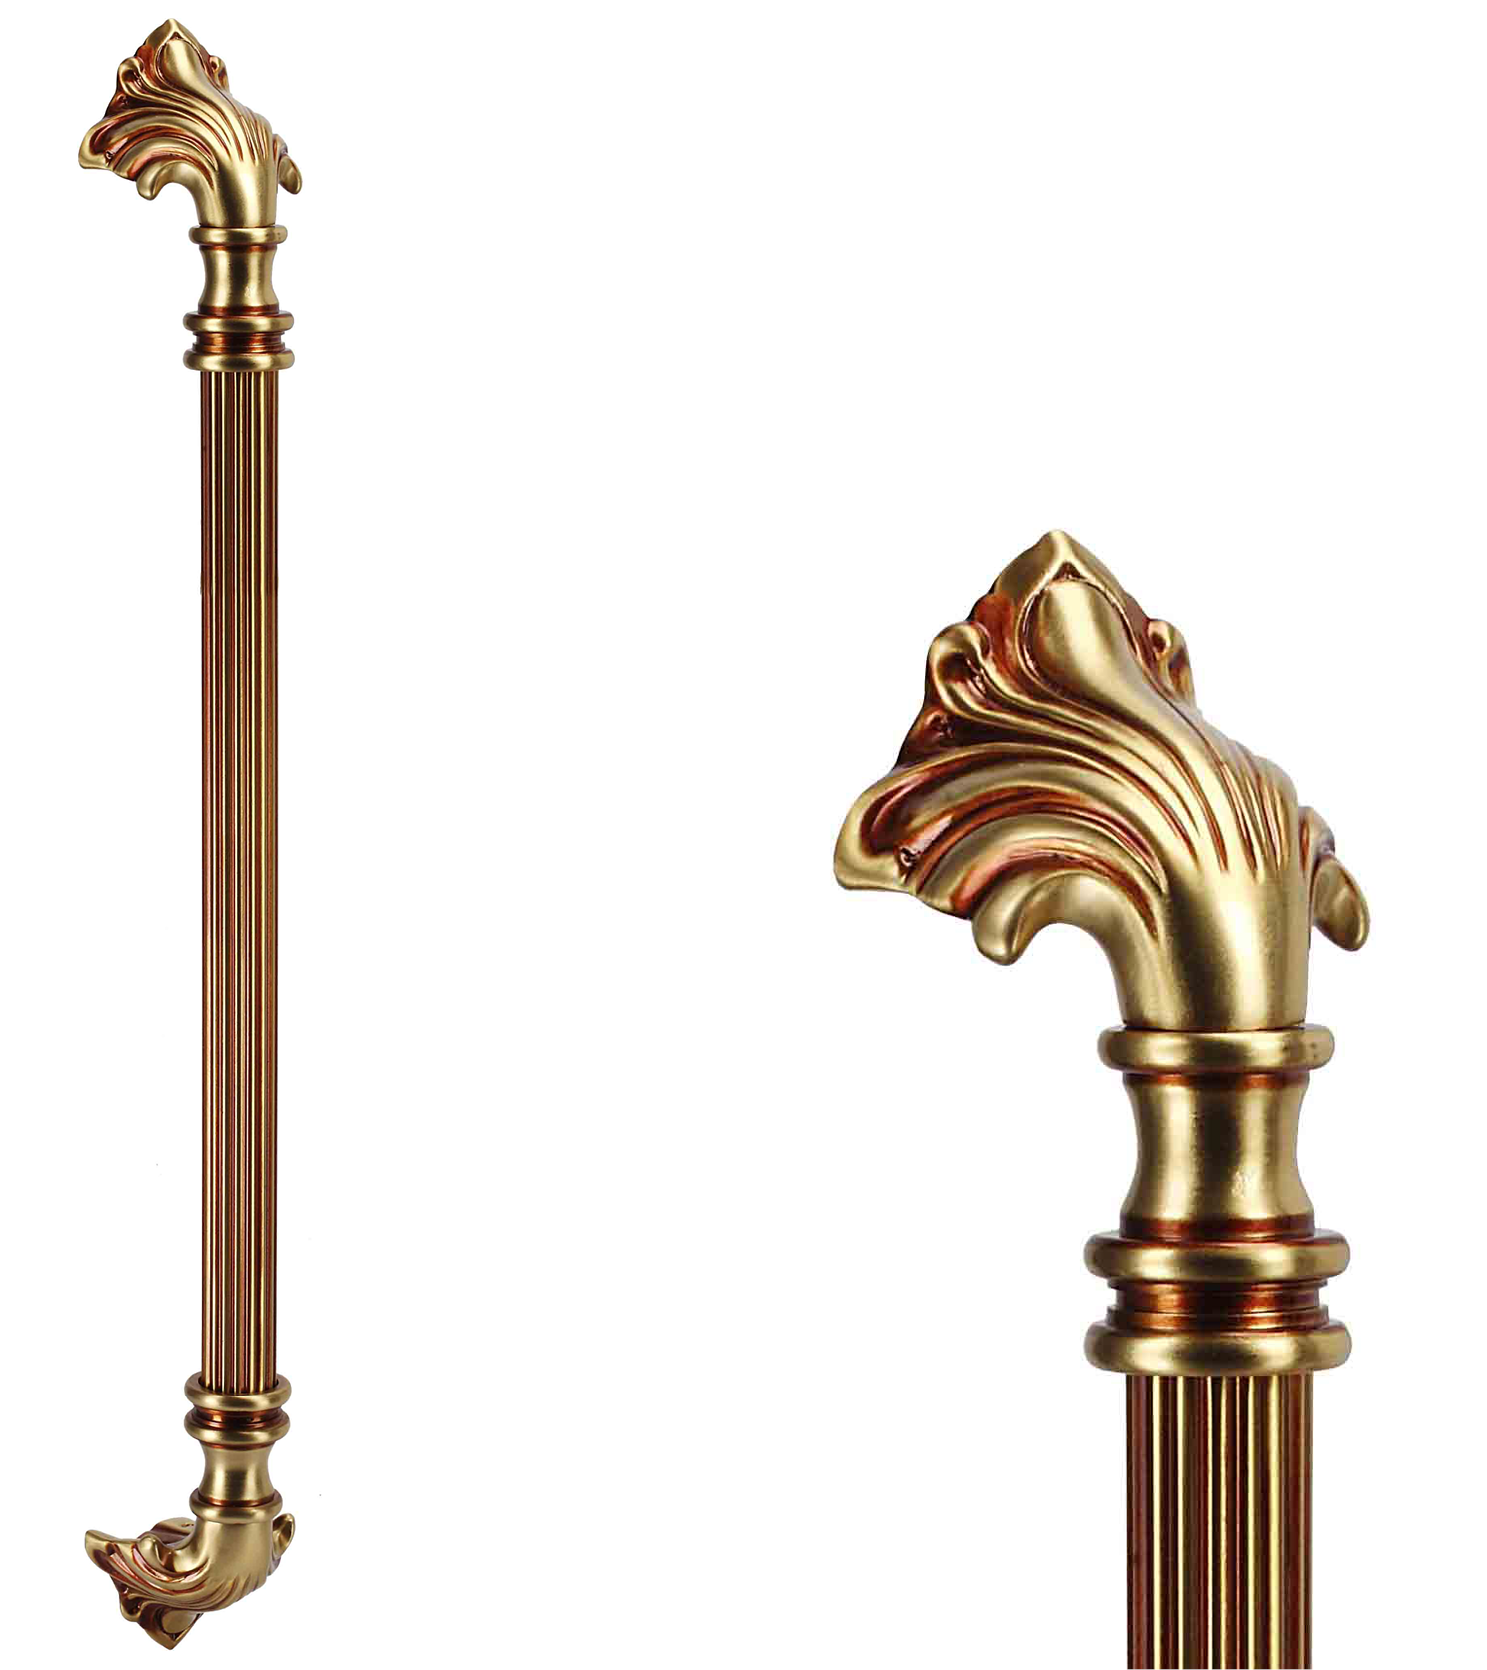 Big main door pull handle and locks for glass and wooden doors  for resorts